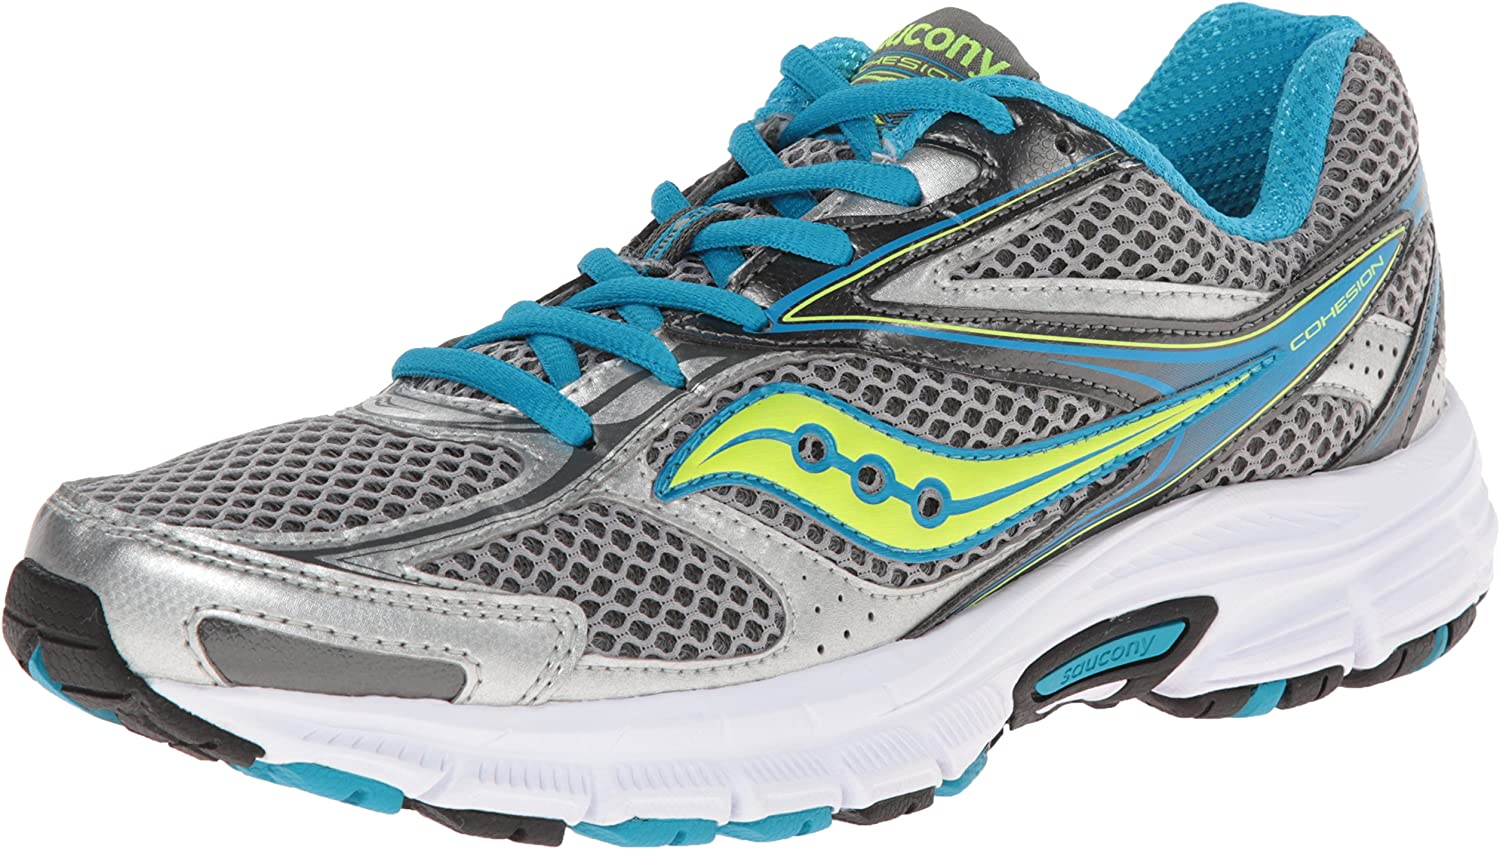 Saucony Women's Cohesion 8 Road Running shoes